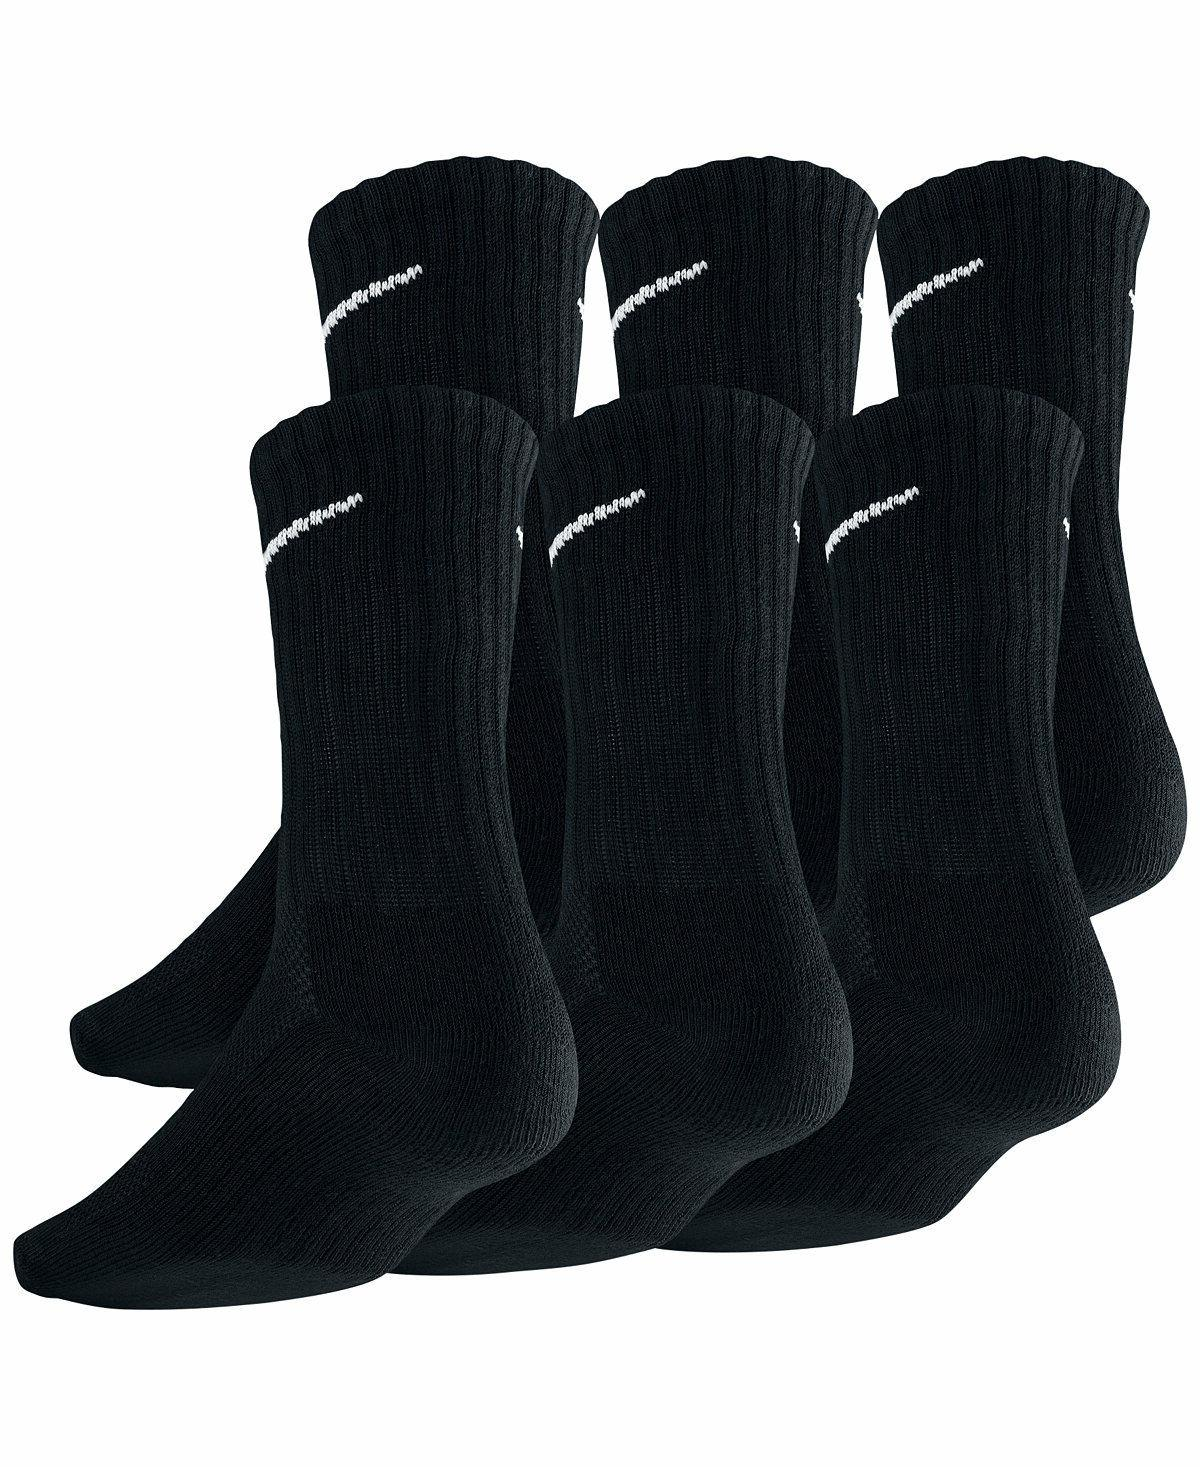 SALE Nike Fit Dry Fit Black/White Crew Socks 3 6 Large